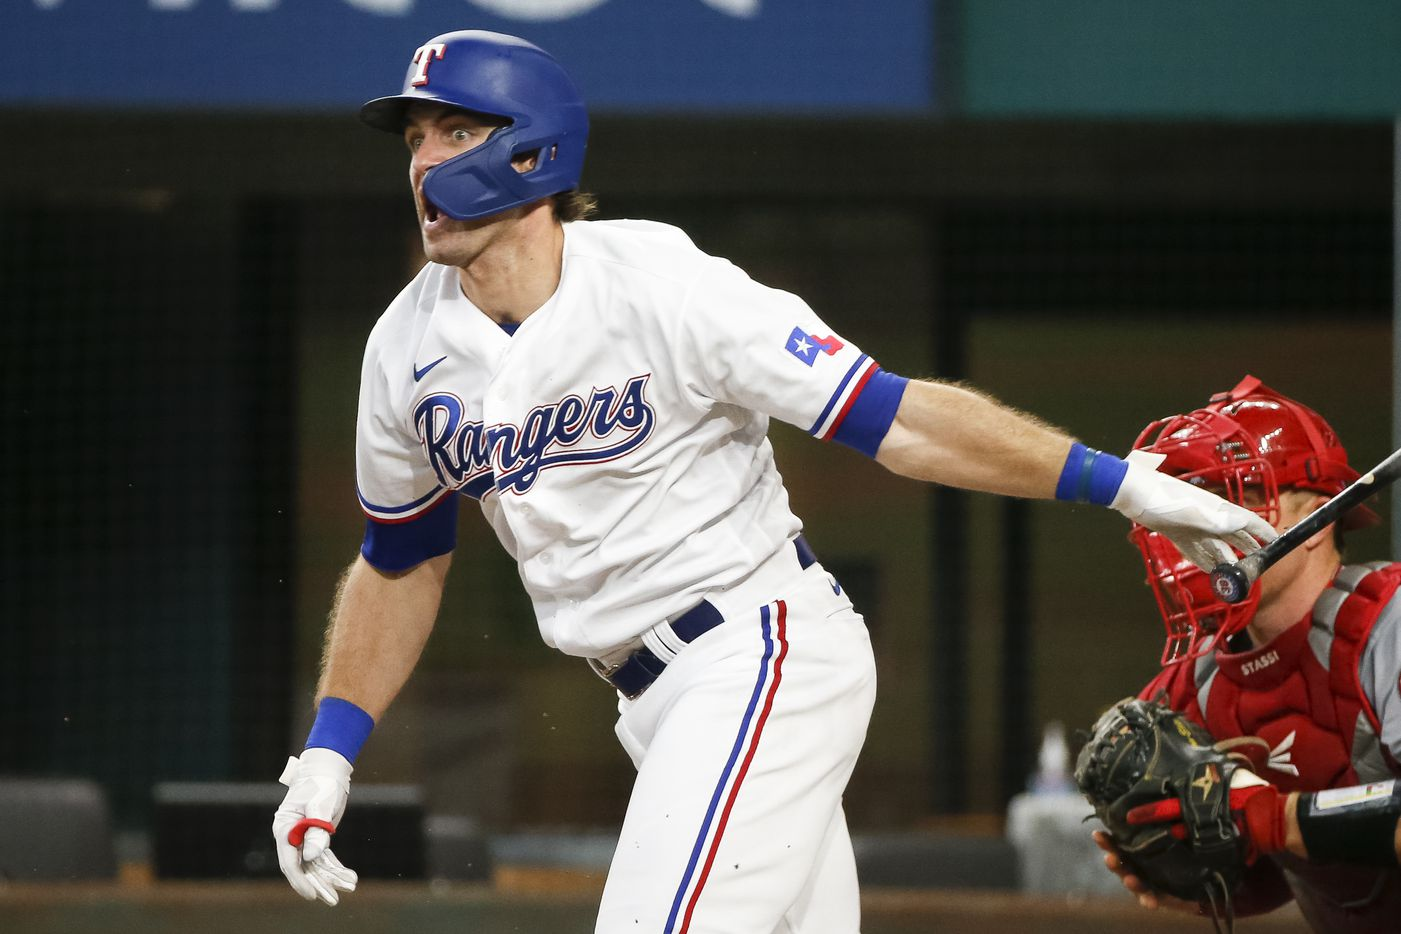 Texas Rangers center fielder DJ Peters (38) reacts after hitting a single during the ninth inning against the Los Angeles Angels at Globe Life Field on Thursday, Aug. 5, 2021, in Arlington. (Elias Valverde II/The Dallas Morning News)